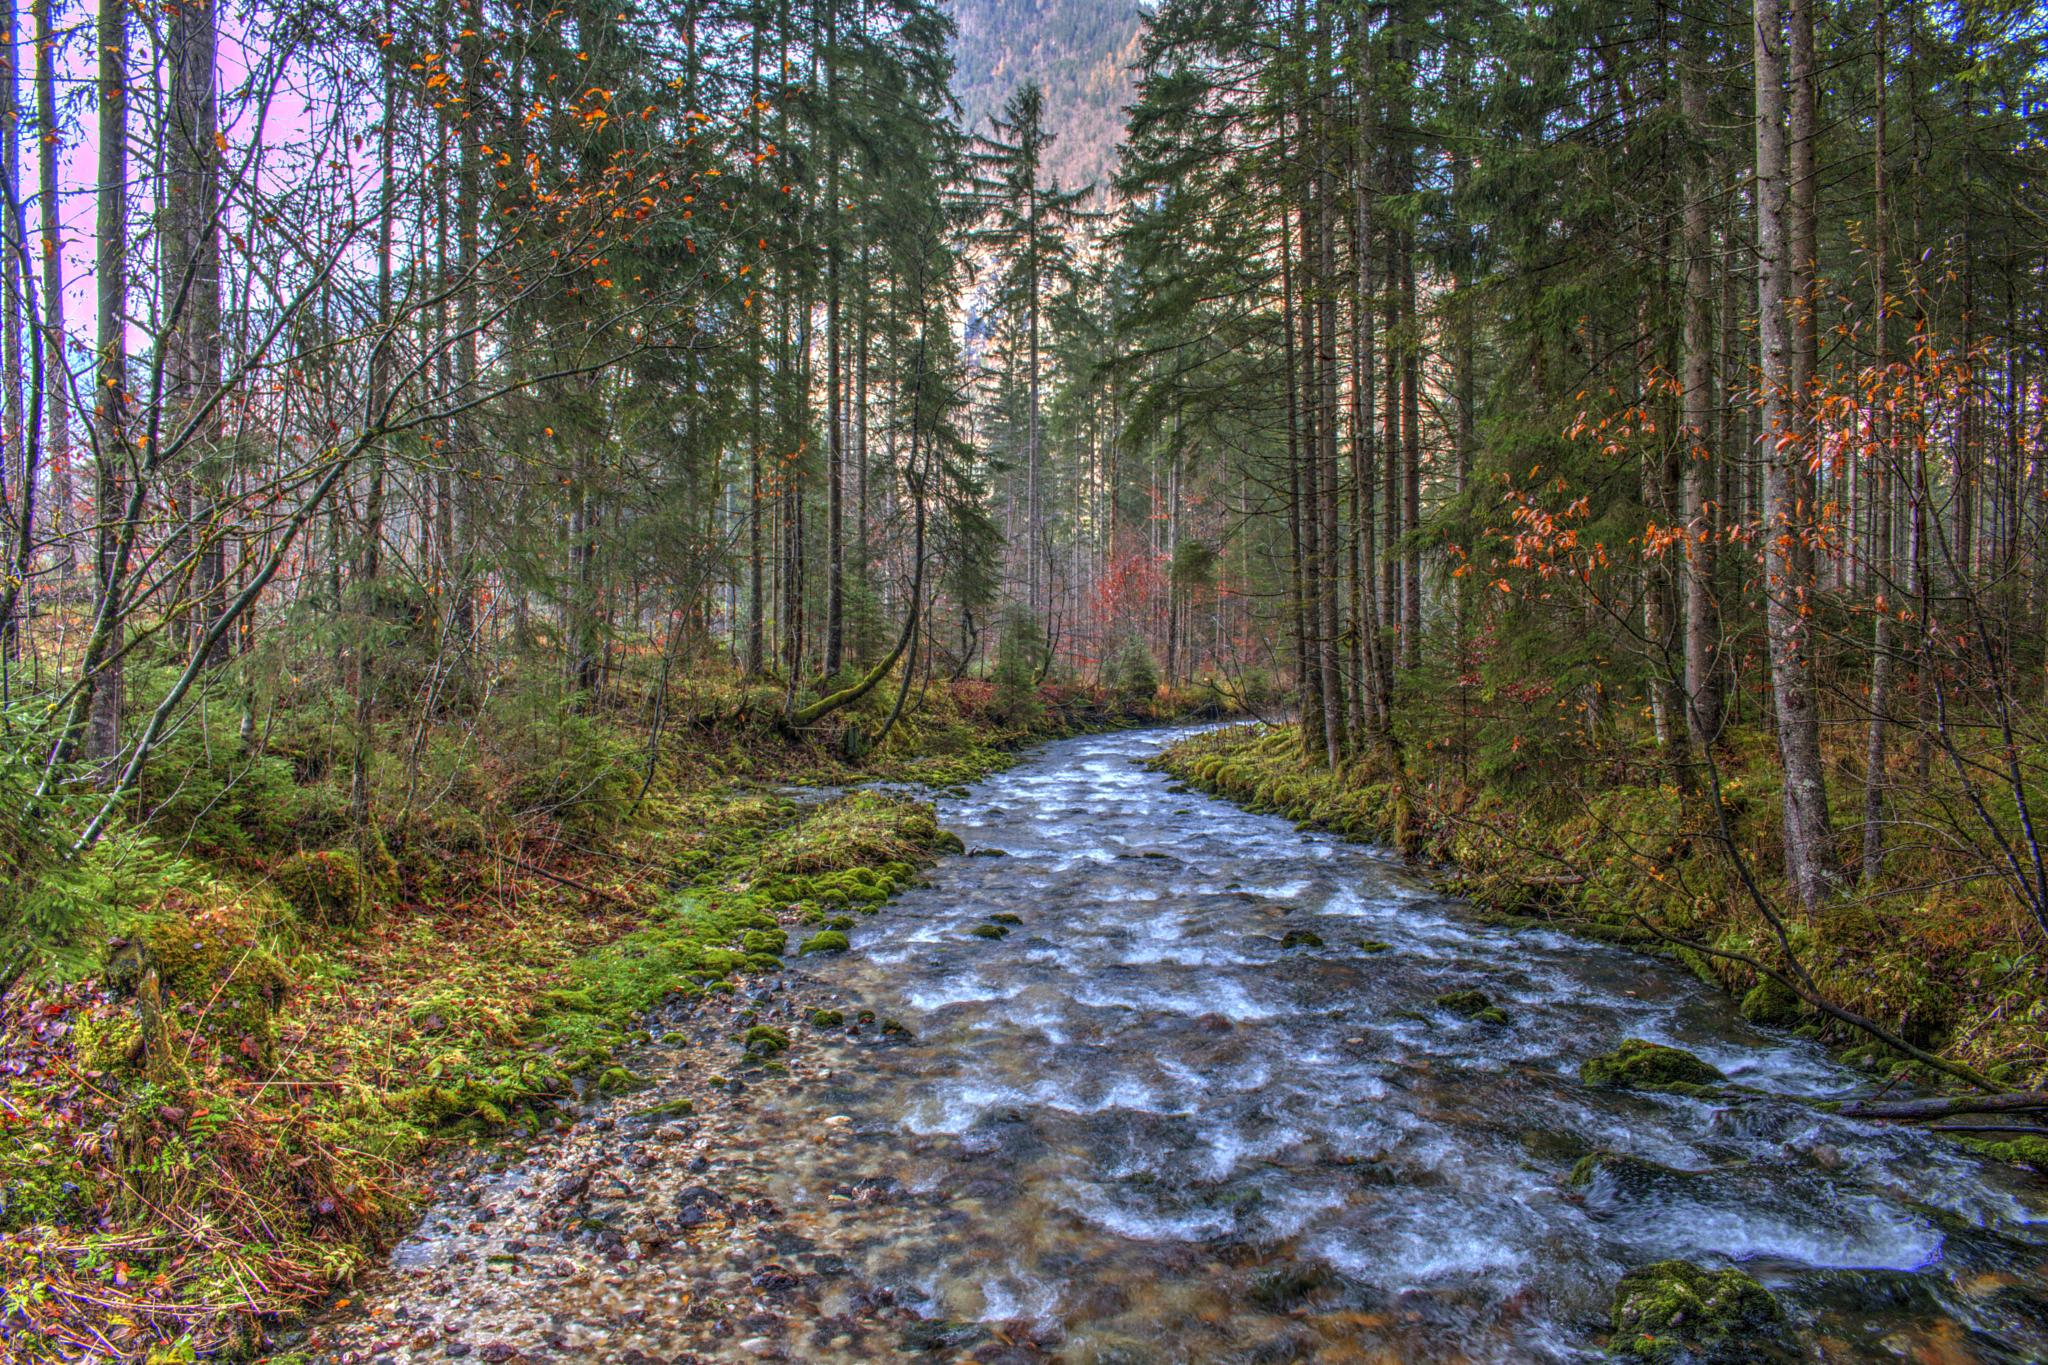 Through the forest by peter.cseke